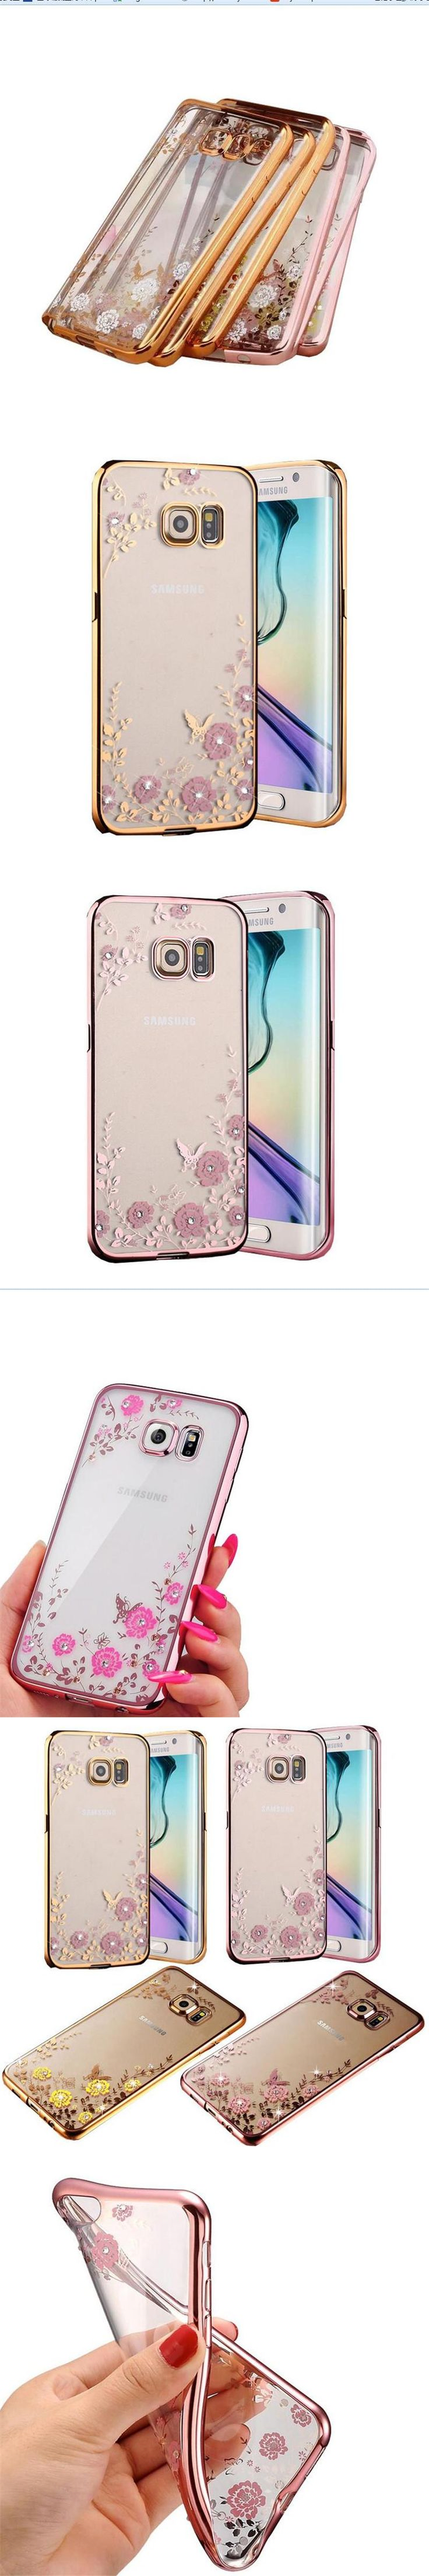 New Luxury Secret Garden Flowers Rhinestone Cell Phone Cases For Samsung Galaxy J5 J7 2016 note4&5 s6 s7 Plating Rose Gold Case